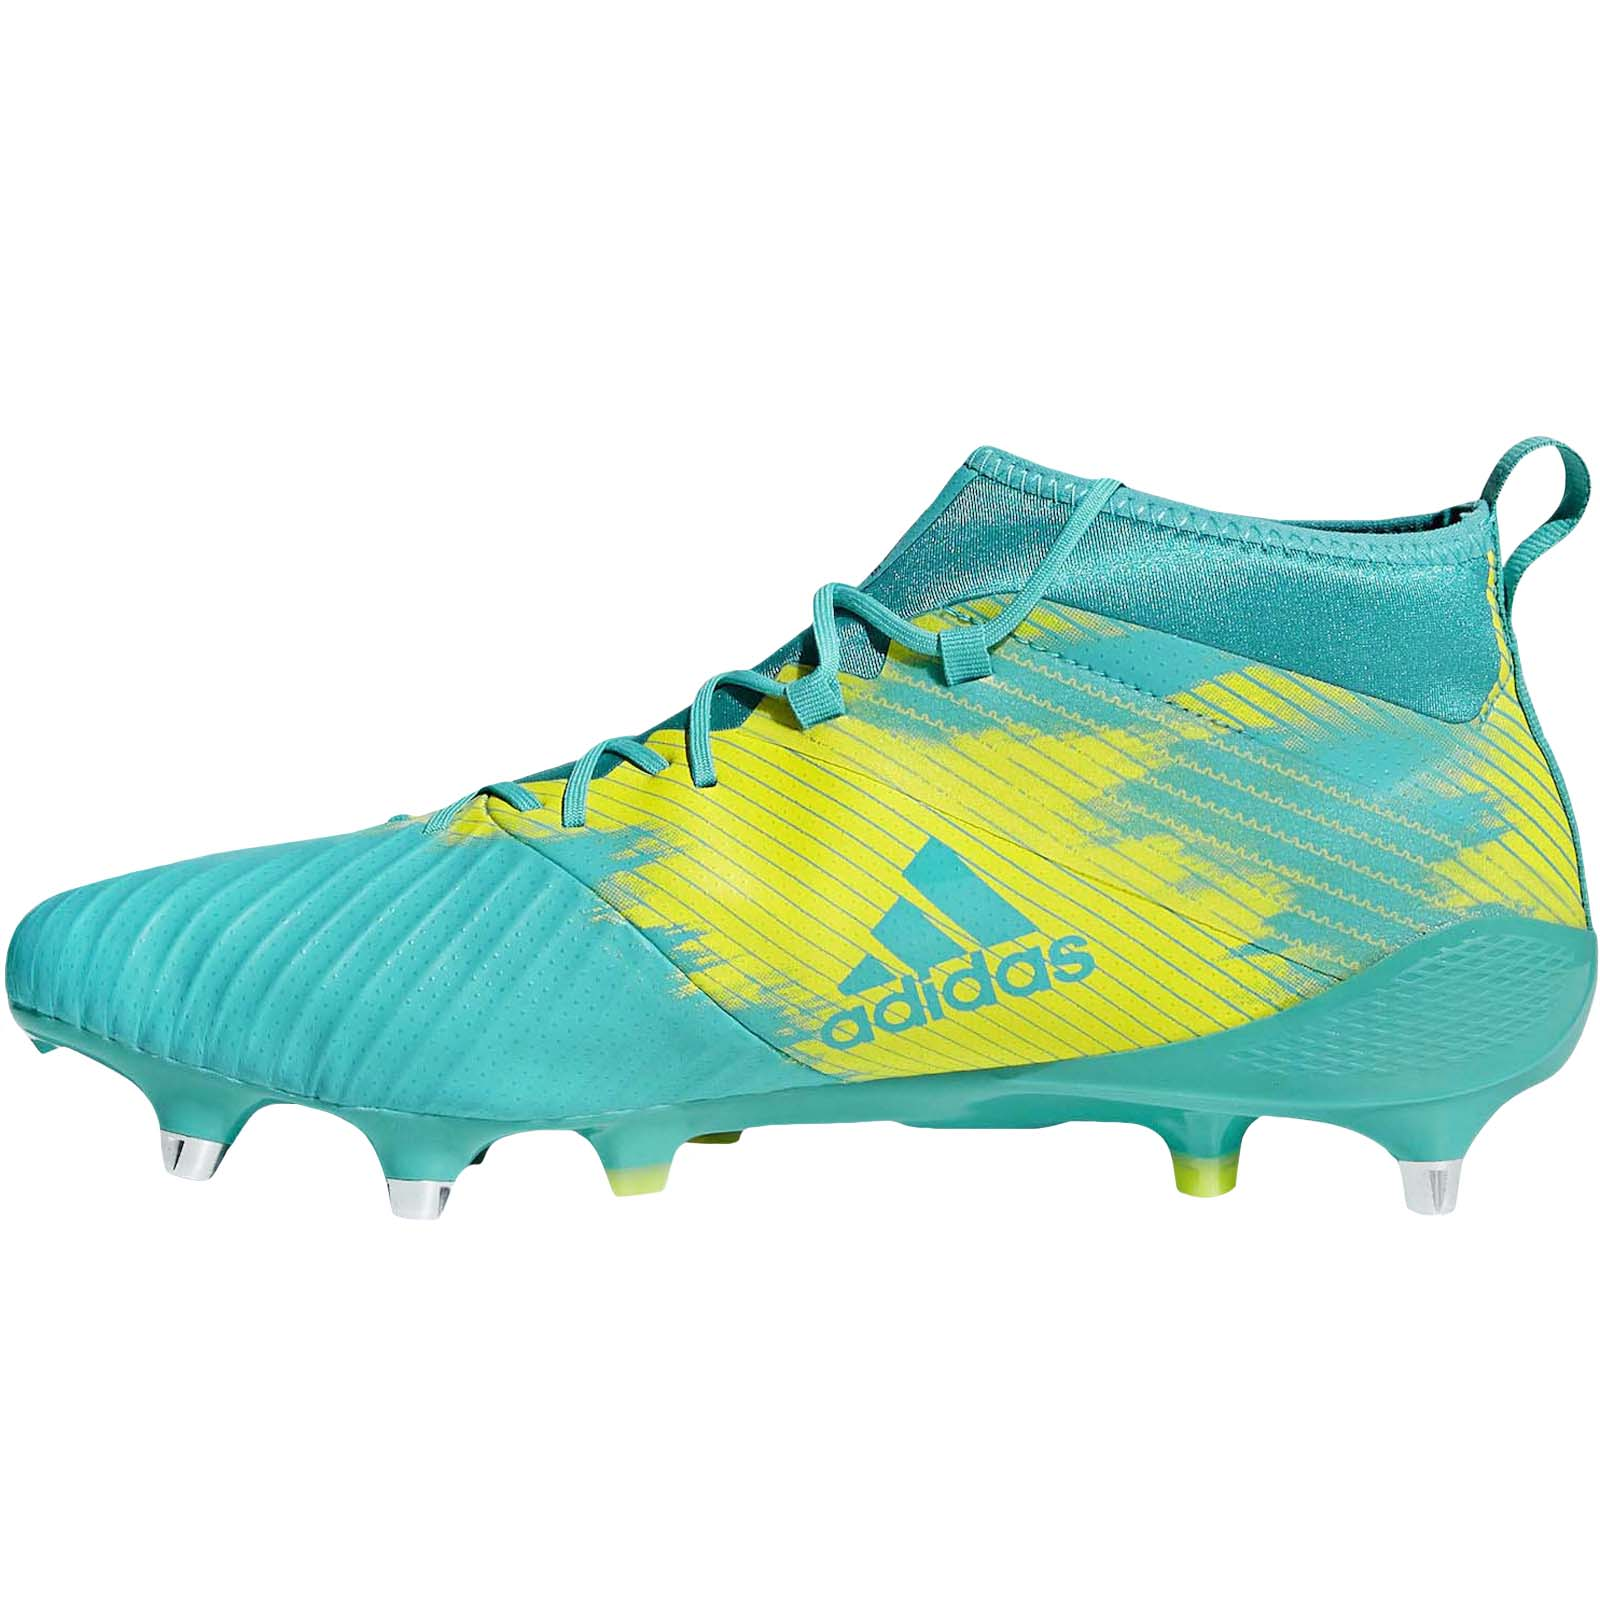 adidas-Performance-Mens-Predator-Flare-SG-Rugby-Shoes-Trainers-Boots thumbnail 6